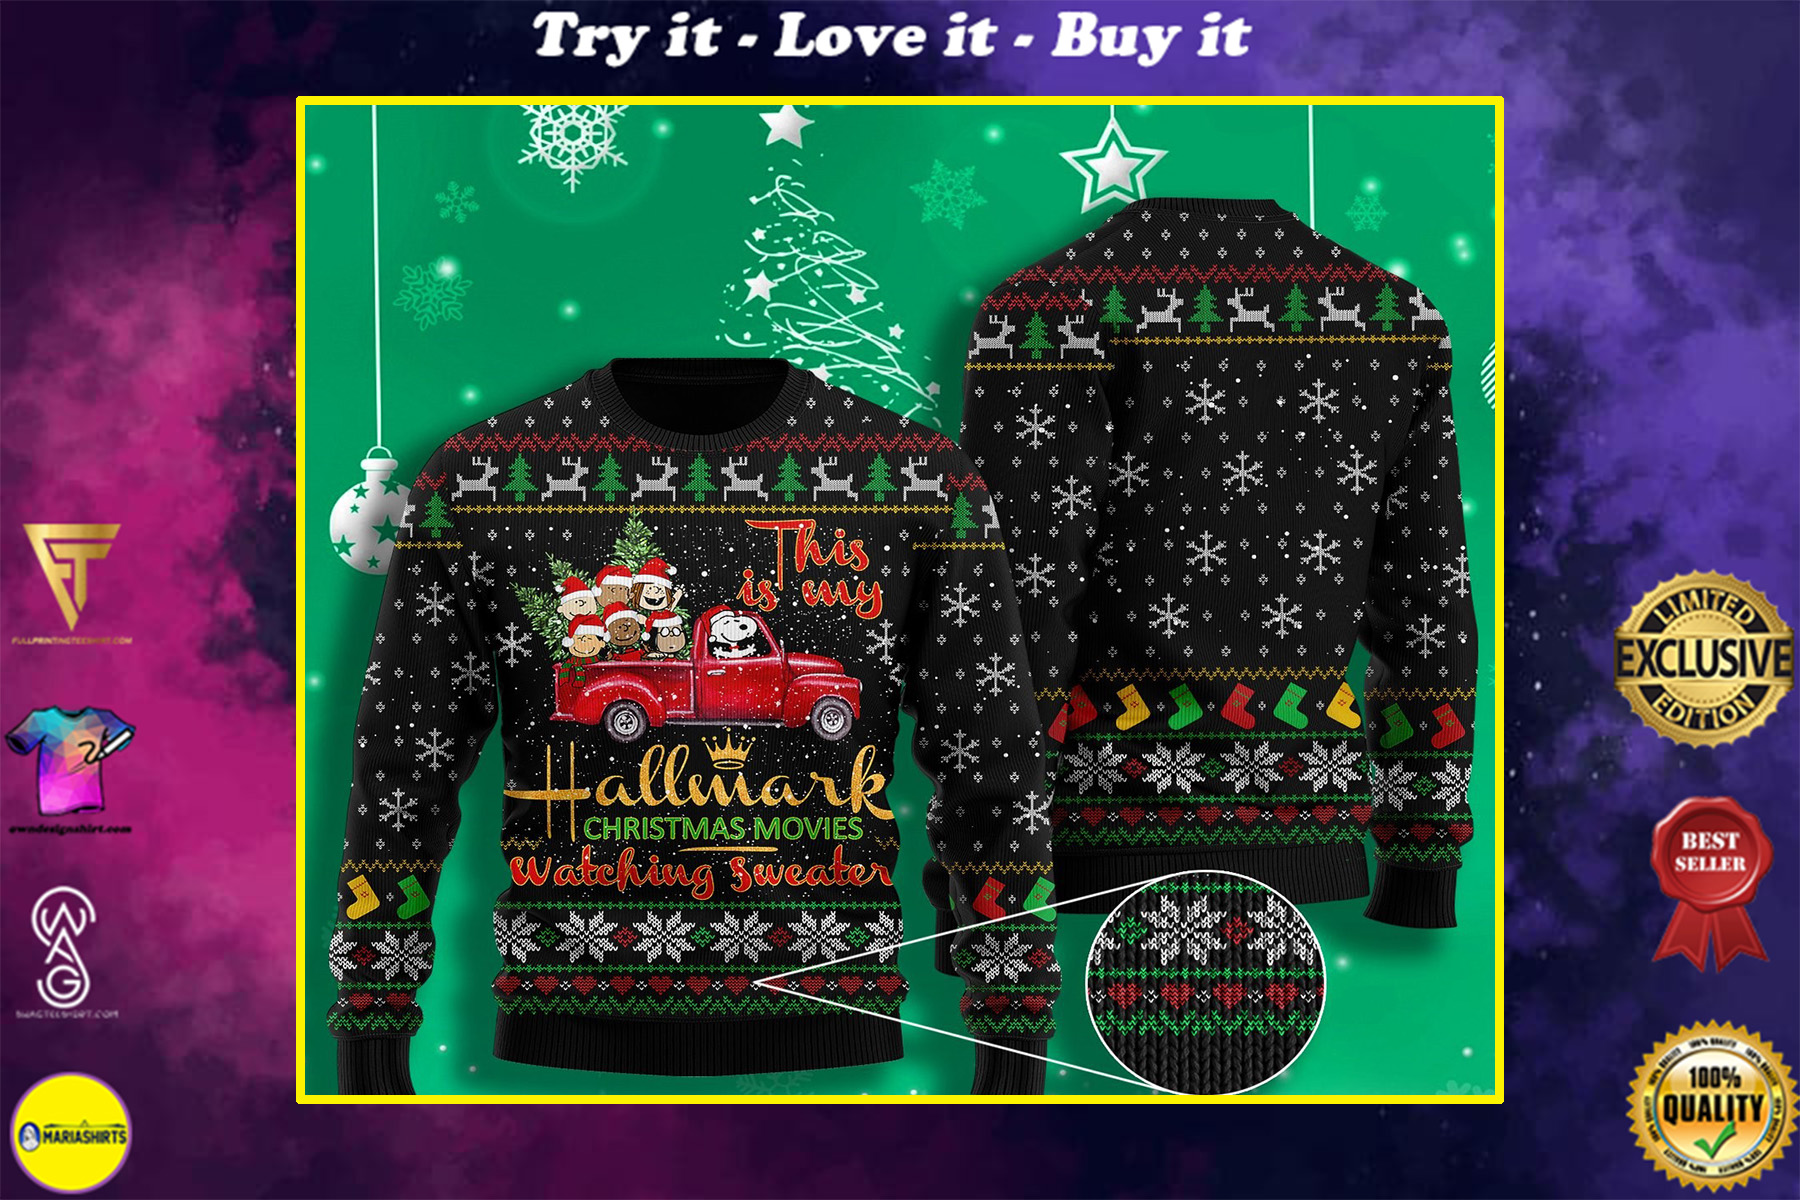 snoopy this is my hallmark christmas movie watching ugly christmas sweater